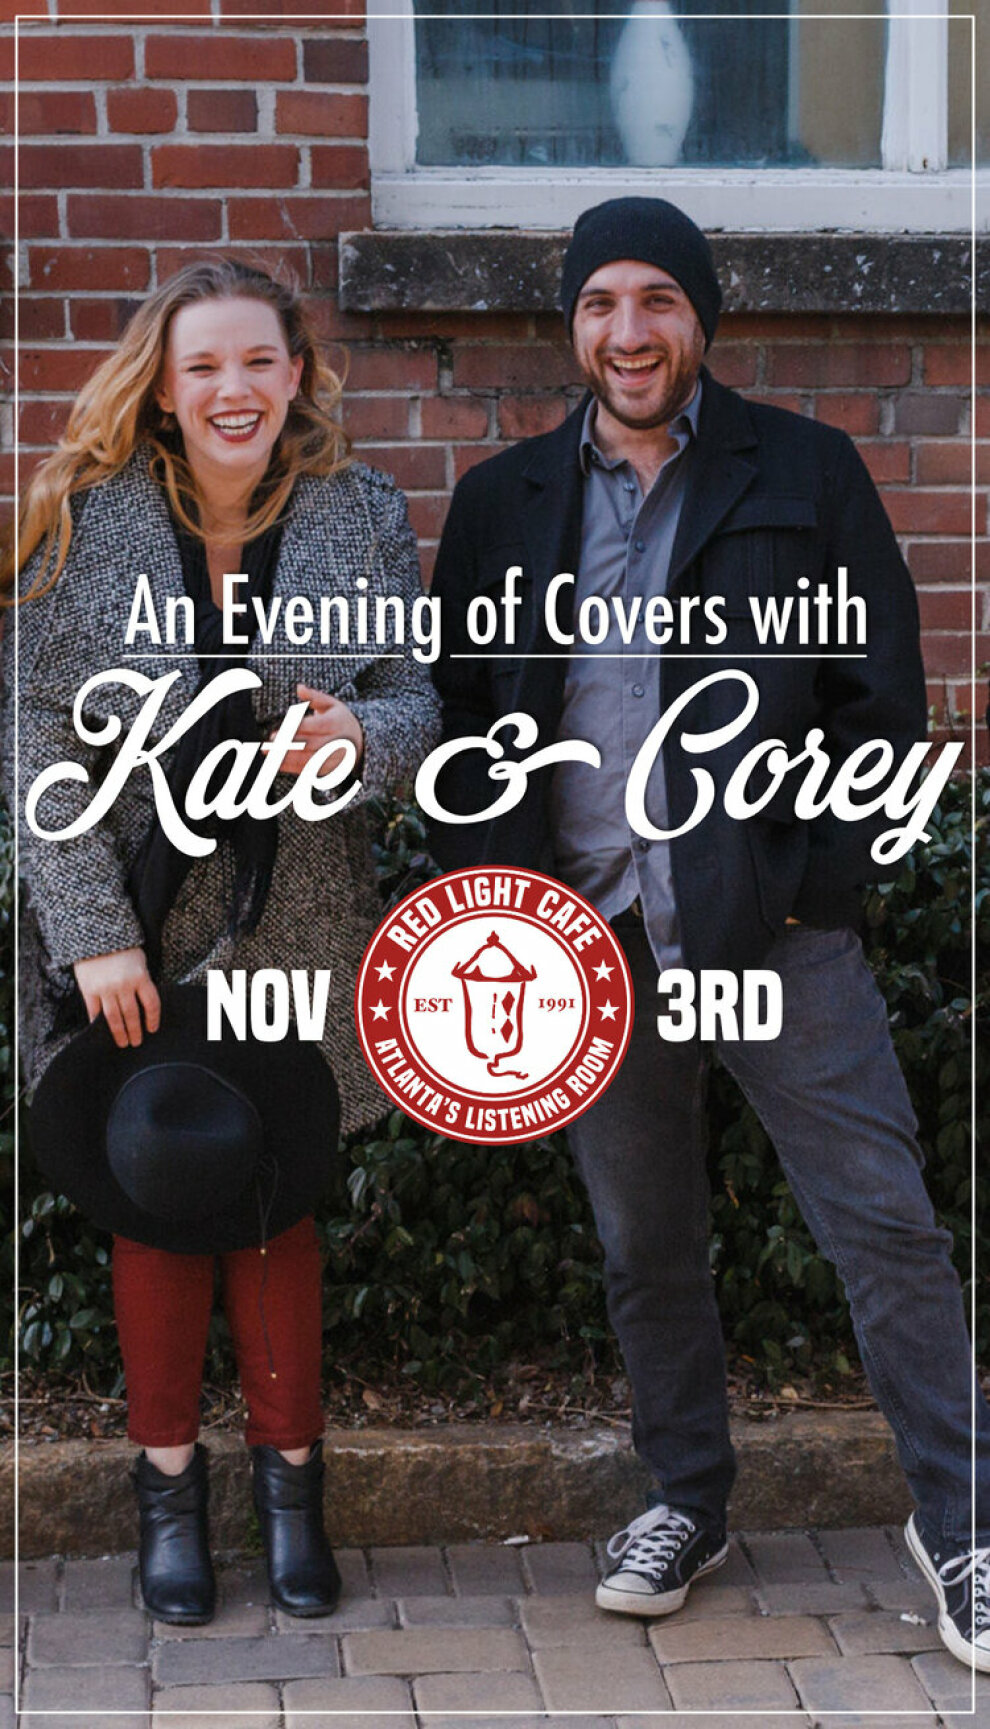 An Evening Of Covers With Kate And Corey At Red Light Cafe Atlanta Ga Nov 3 2019 Poster 1200